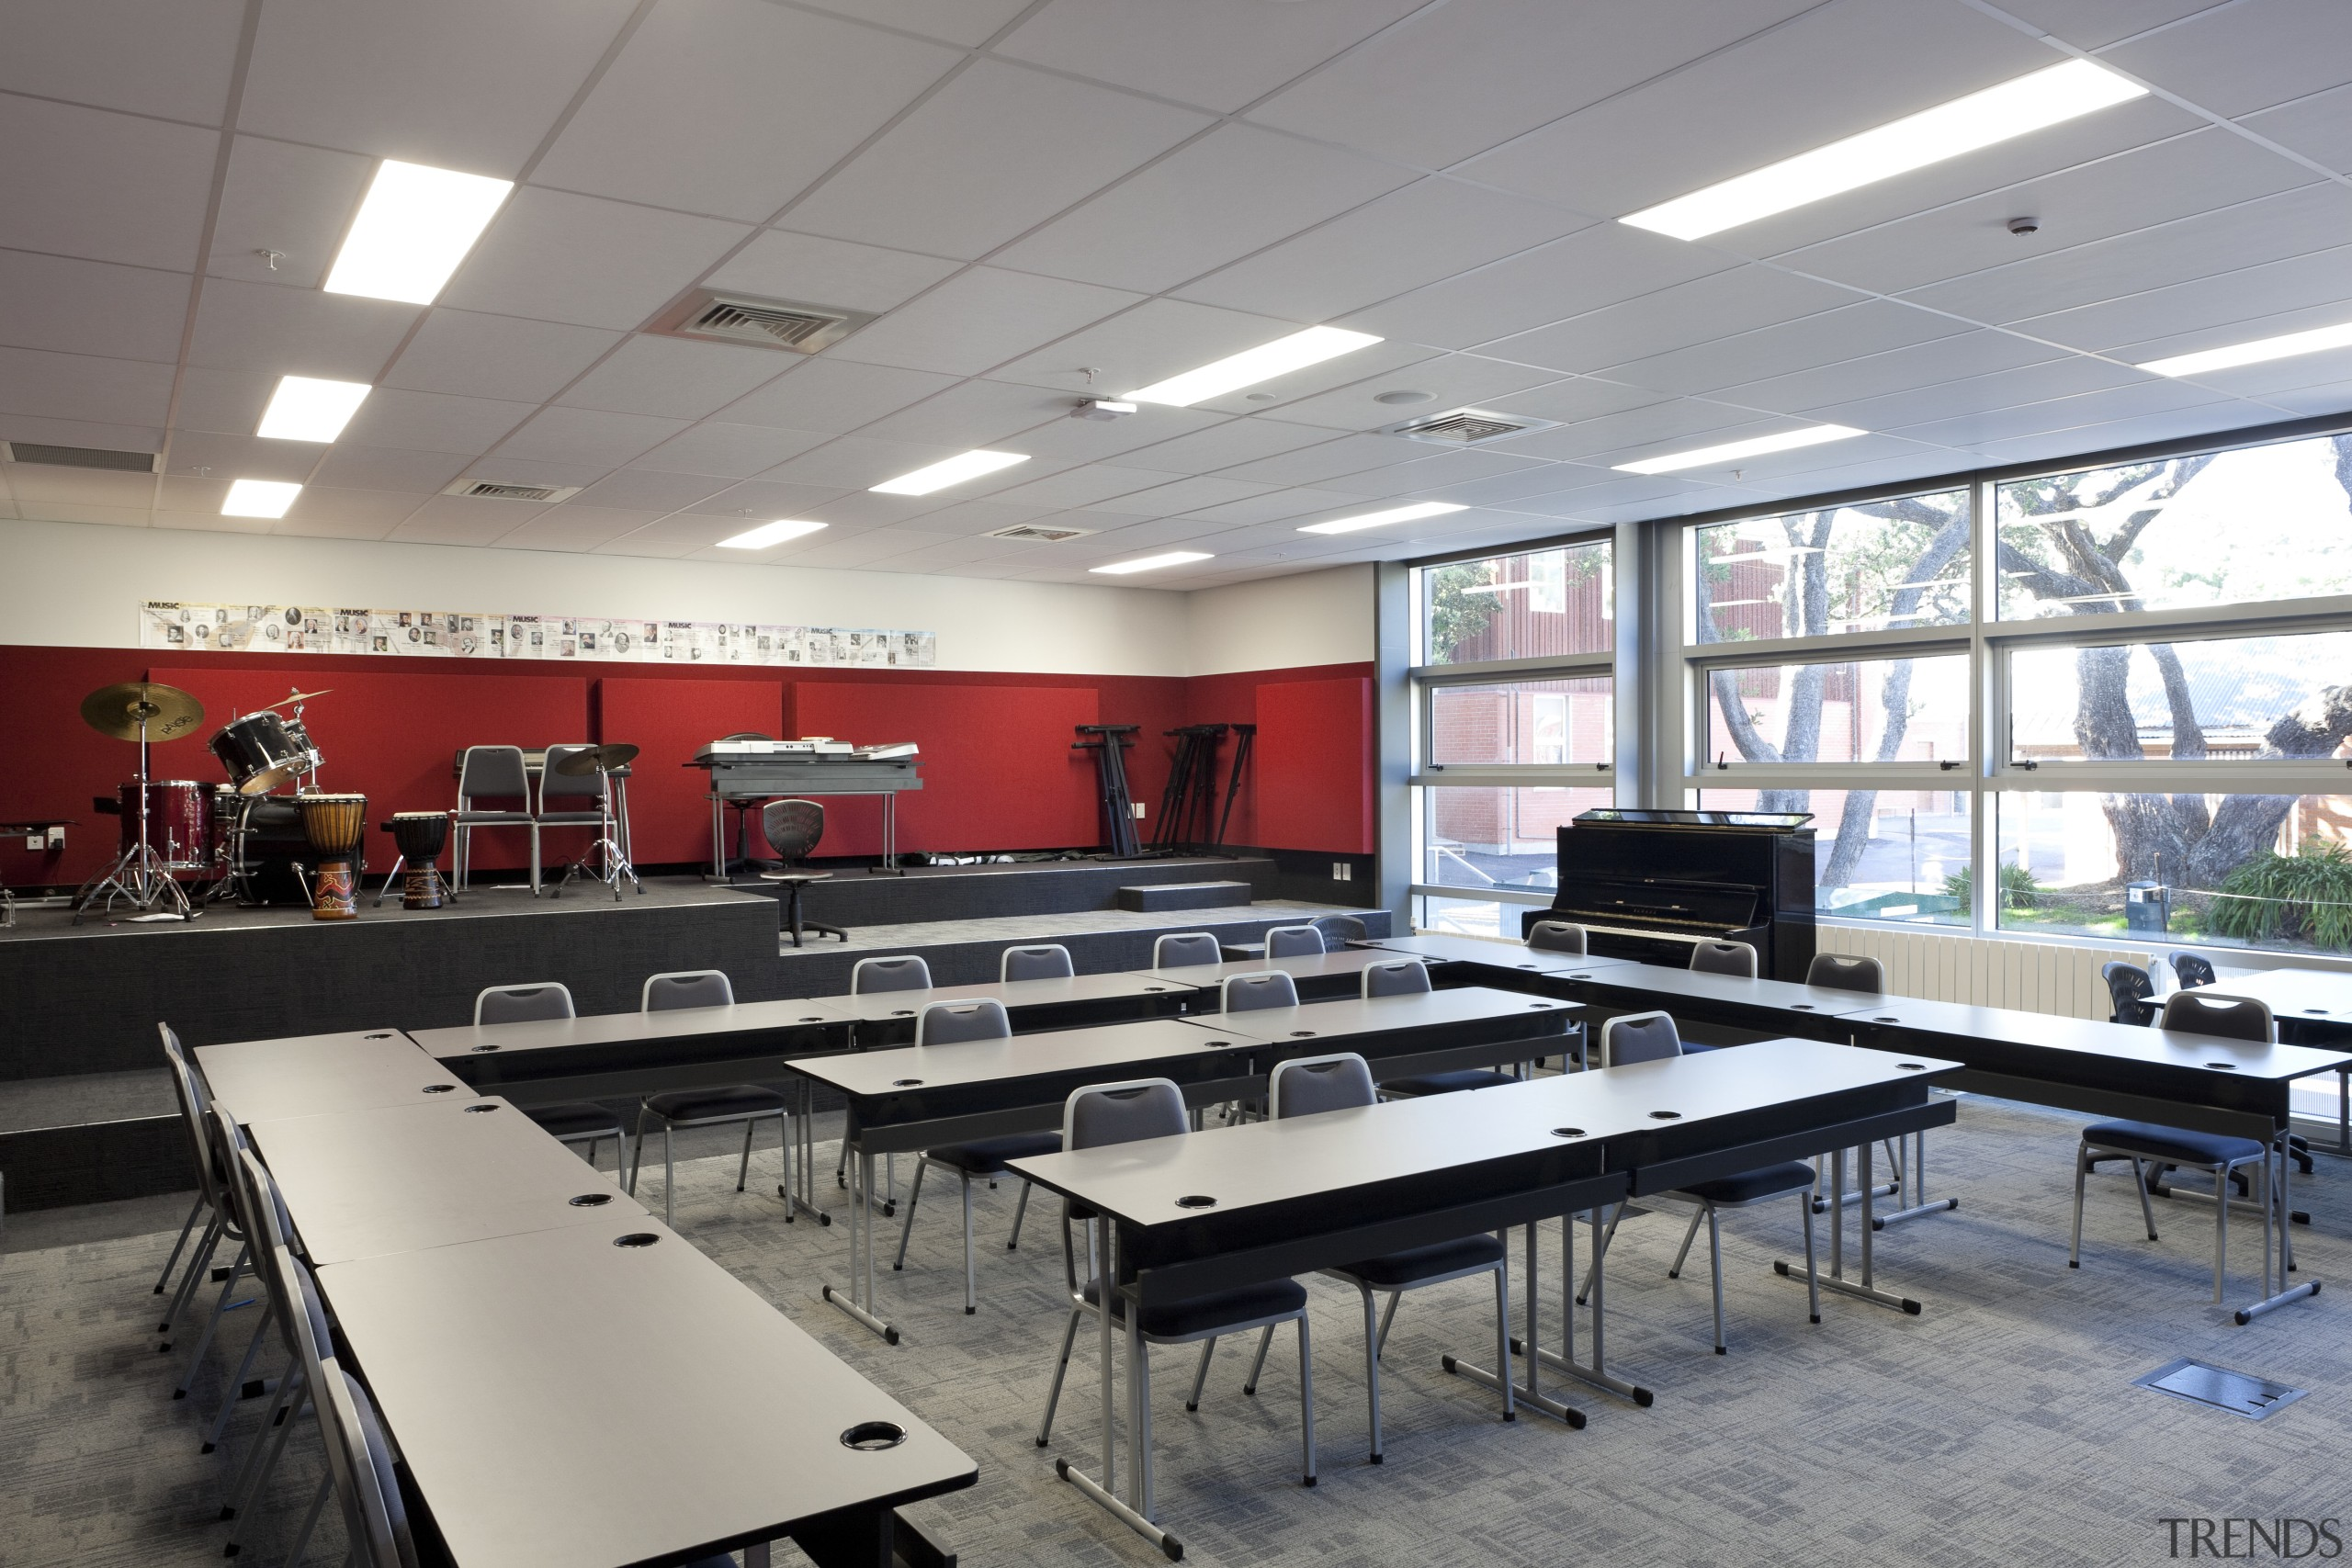 View of classroom with dark furniture and red cafeteria, classroom, conference hall, institution, interior design, room, table, gray